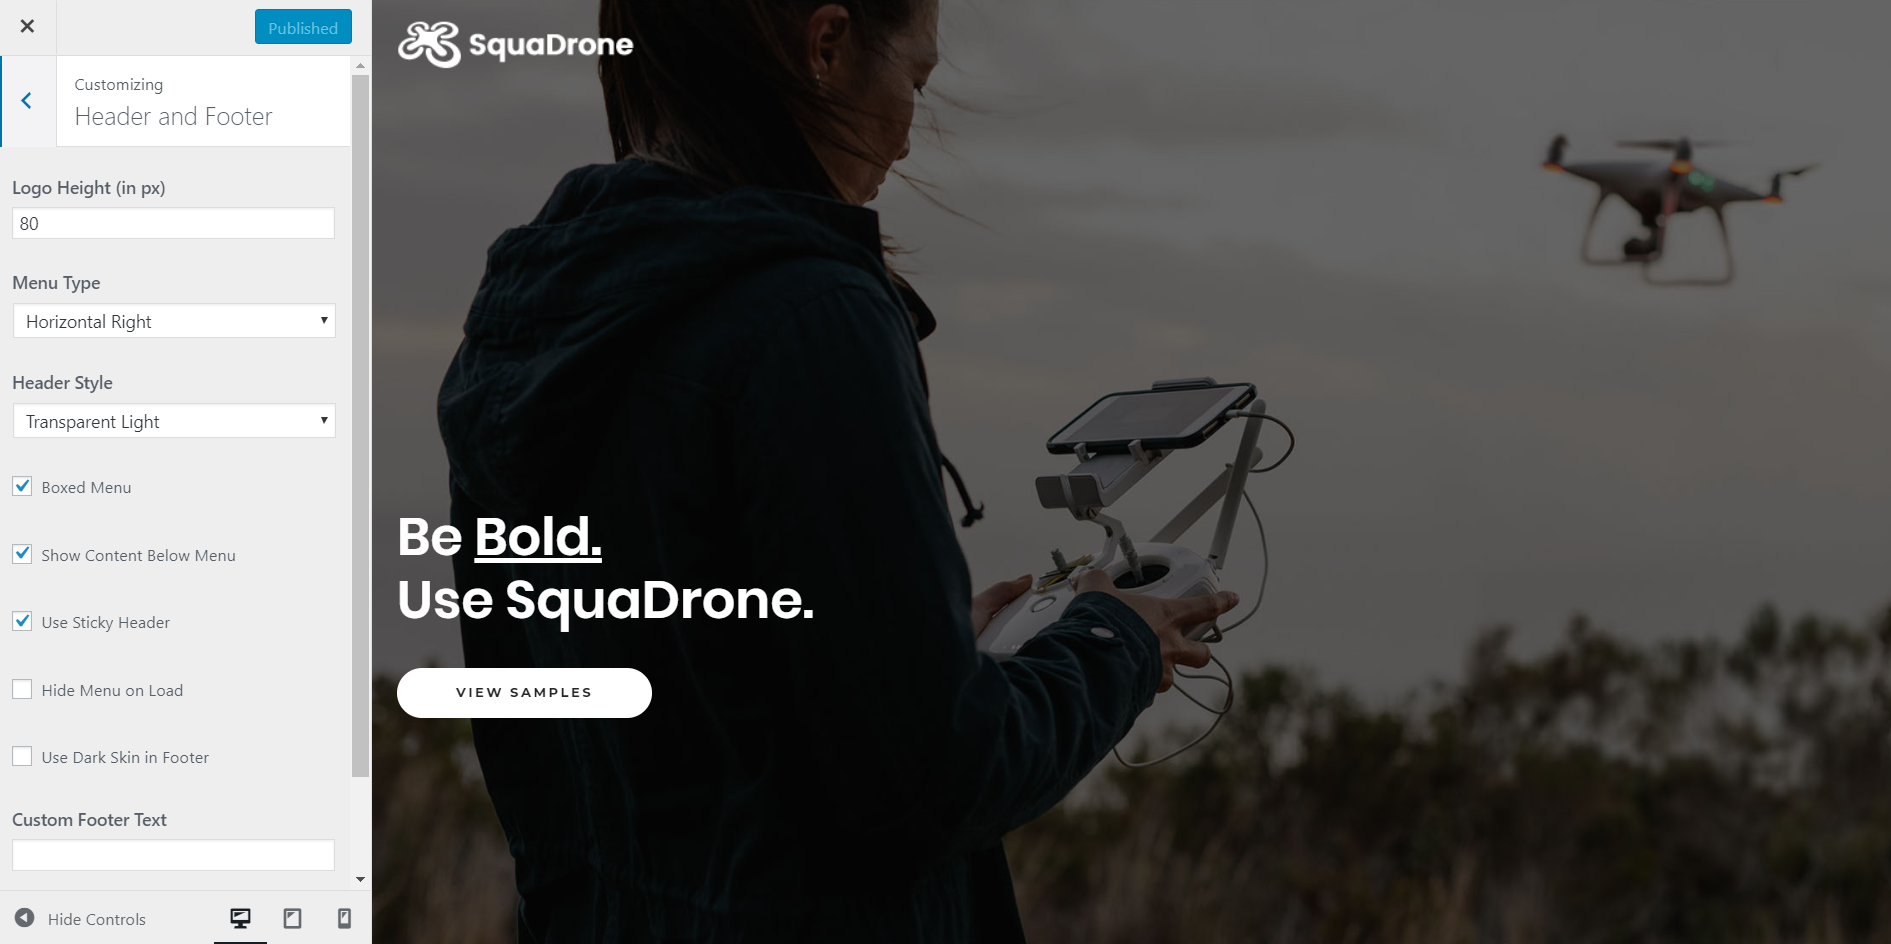 https://documentation.bold-themes.com/squadrone/wp-content/uploads/sites/29/2018/02/header-and-footer.png